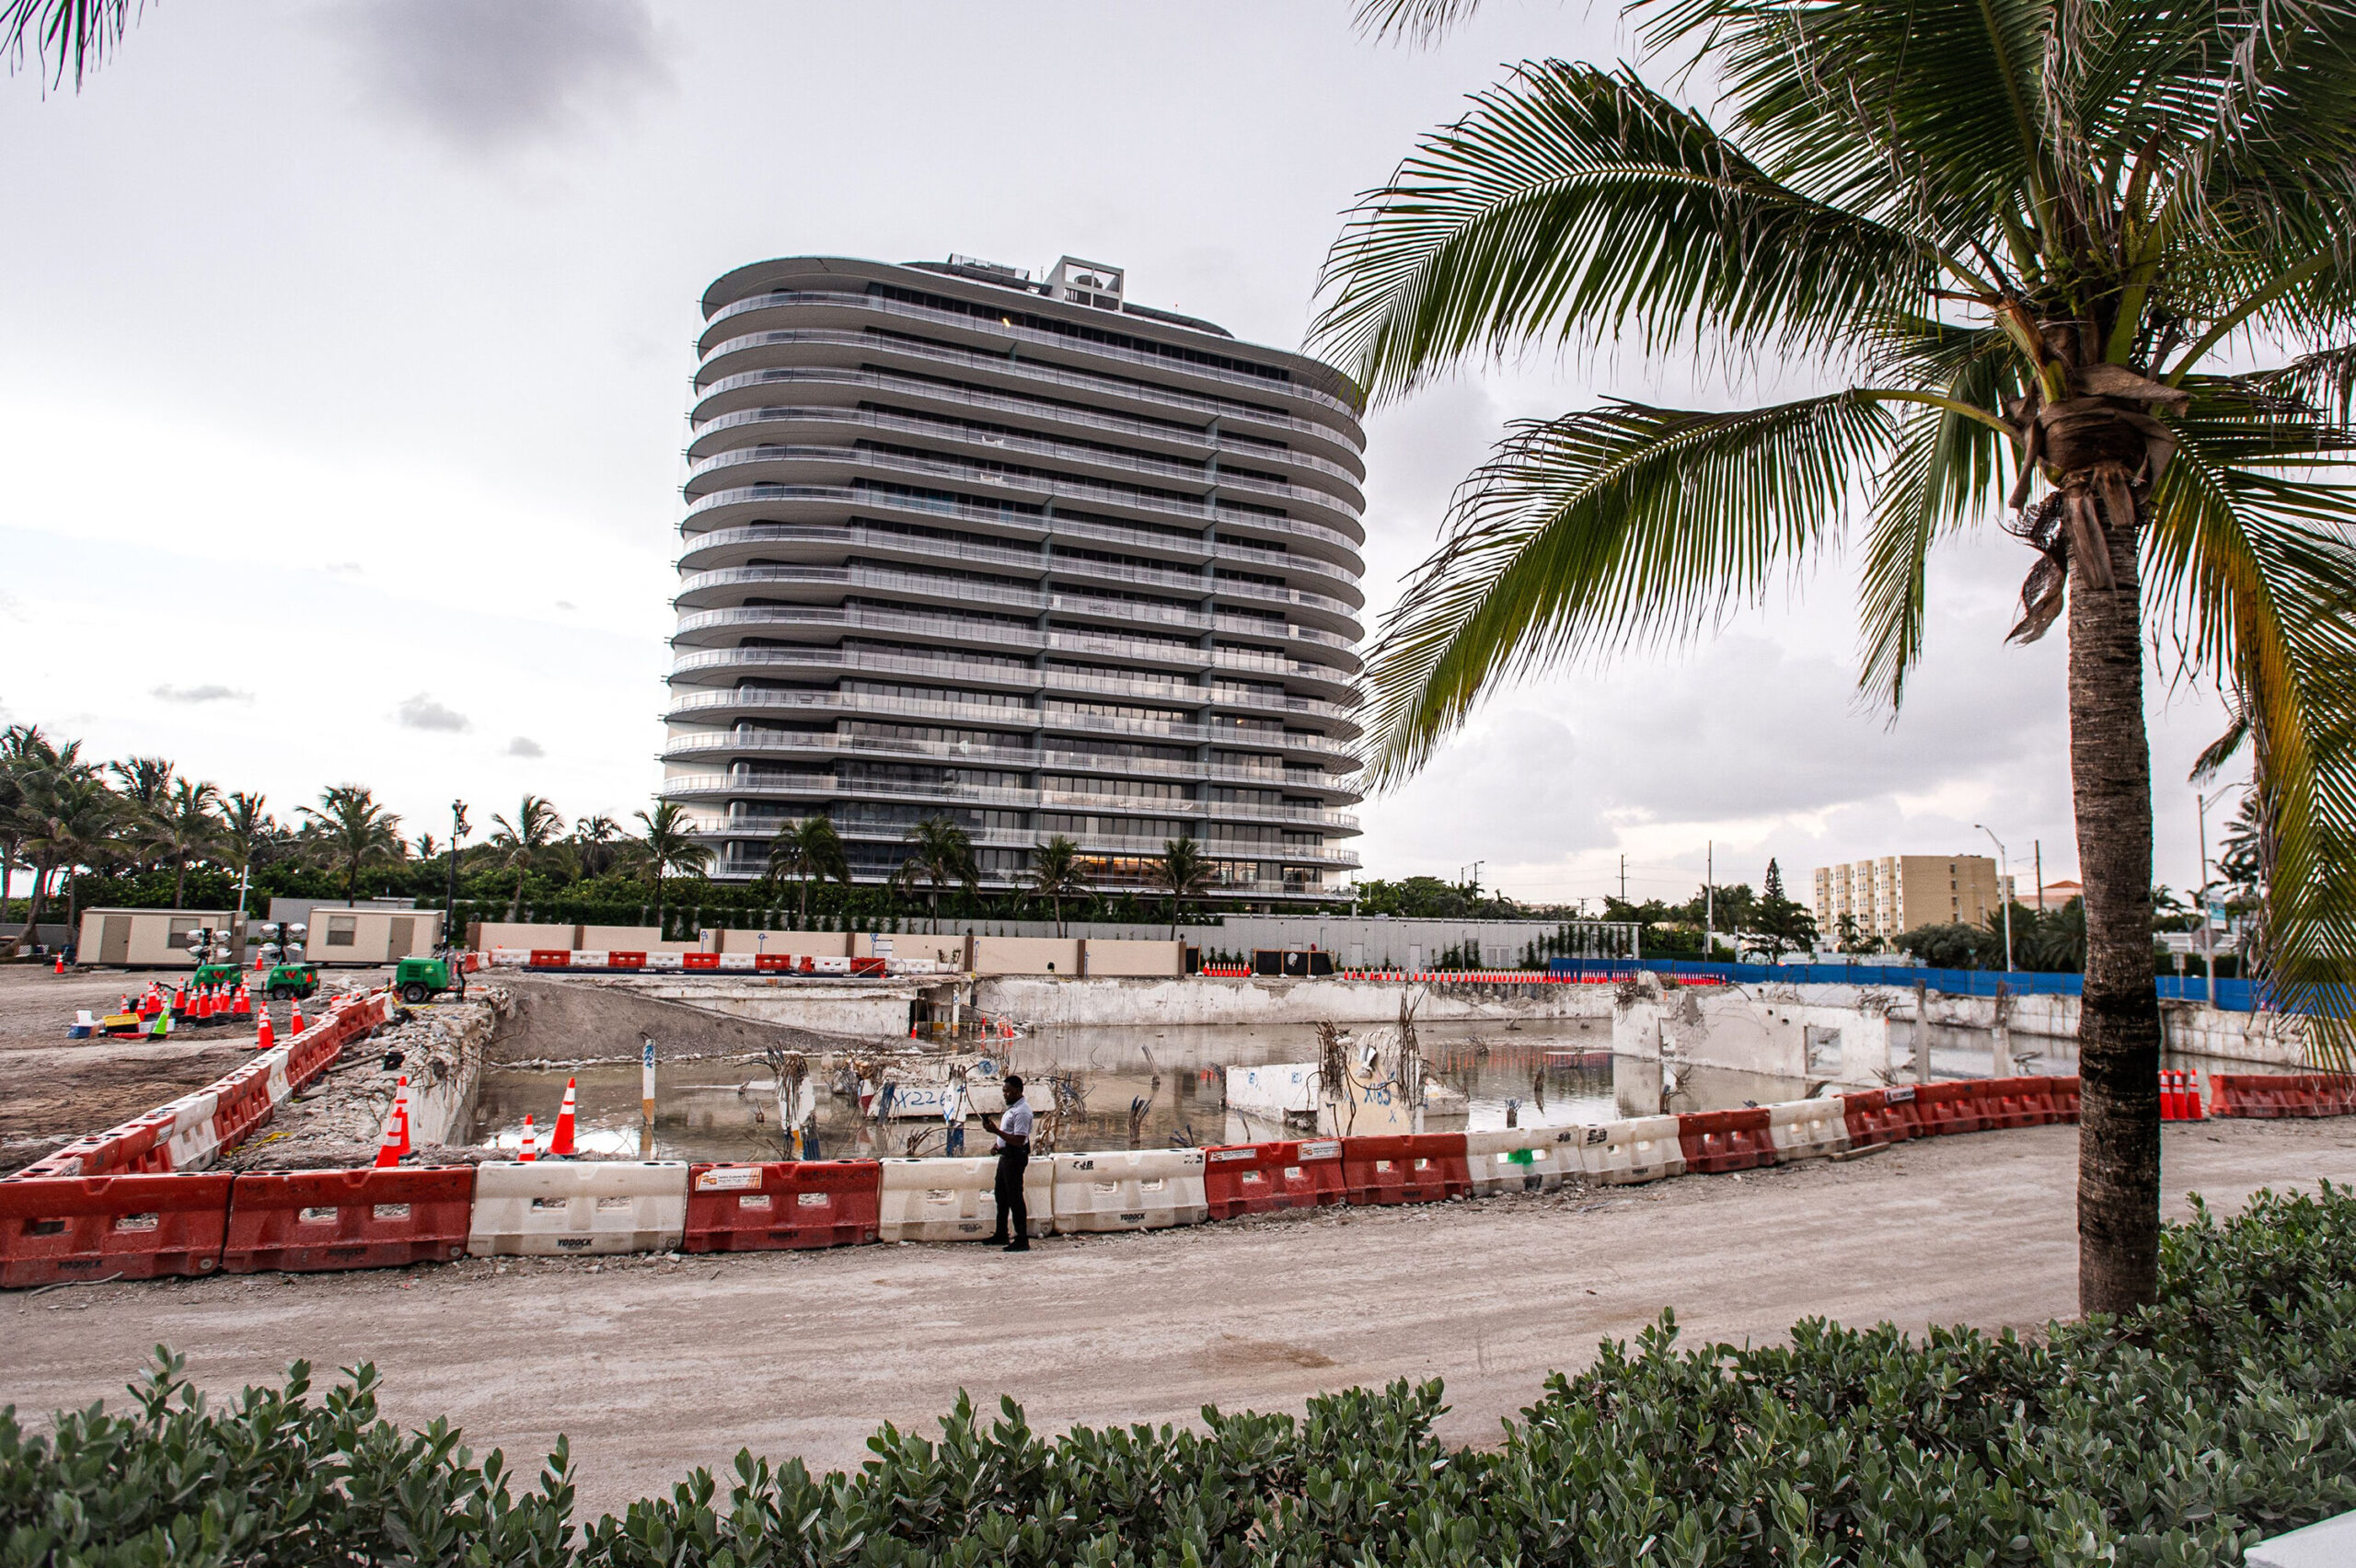 <i>Giorgio Viera/AFP/Getty Images</i><br/>General view of the land where the partially collapsed Champlain Towers South building was located  on July 23